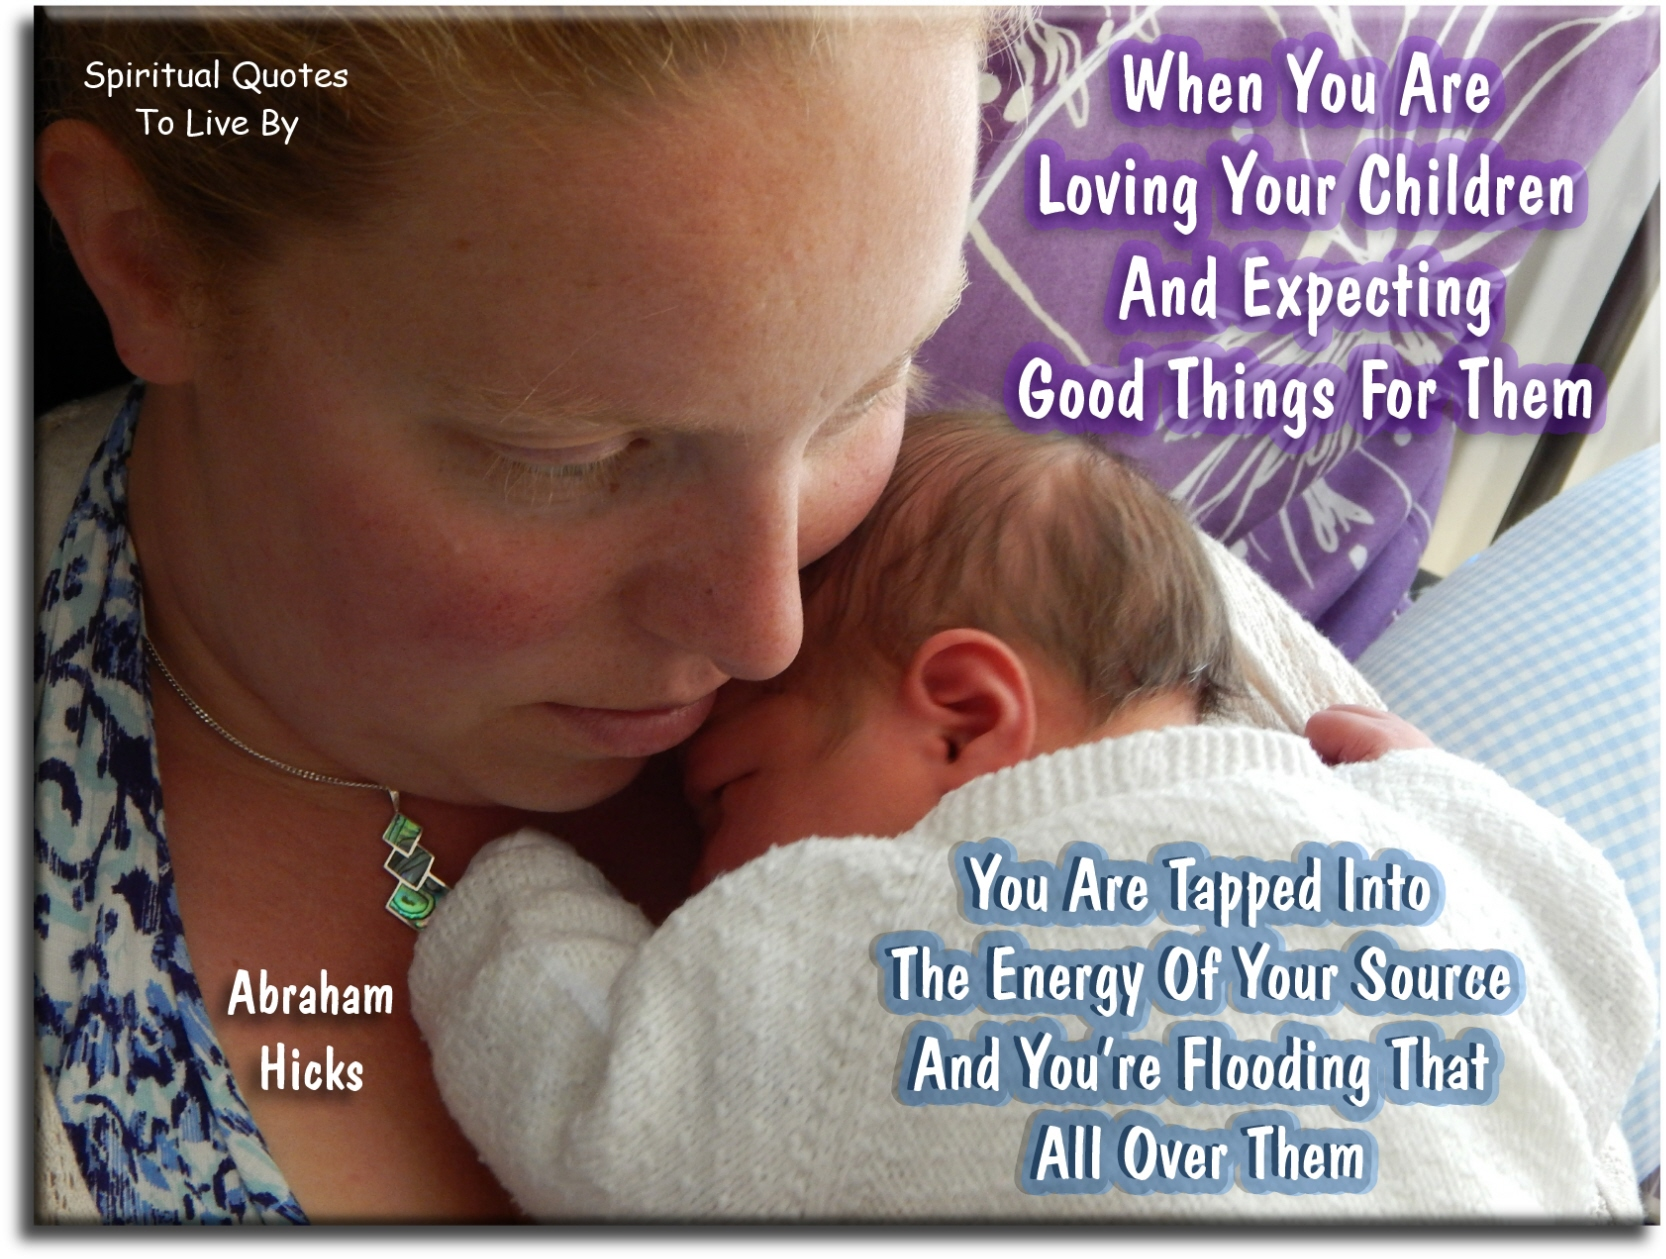 Inspirational Quotes About Loving Children Abrahamhicks Quotes About Children To Live By